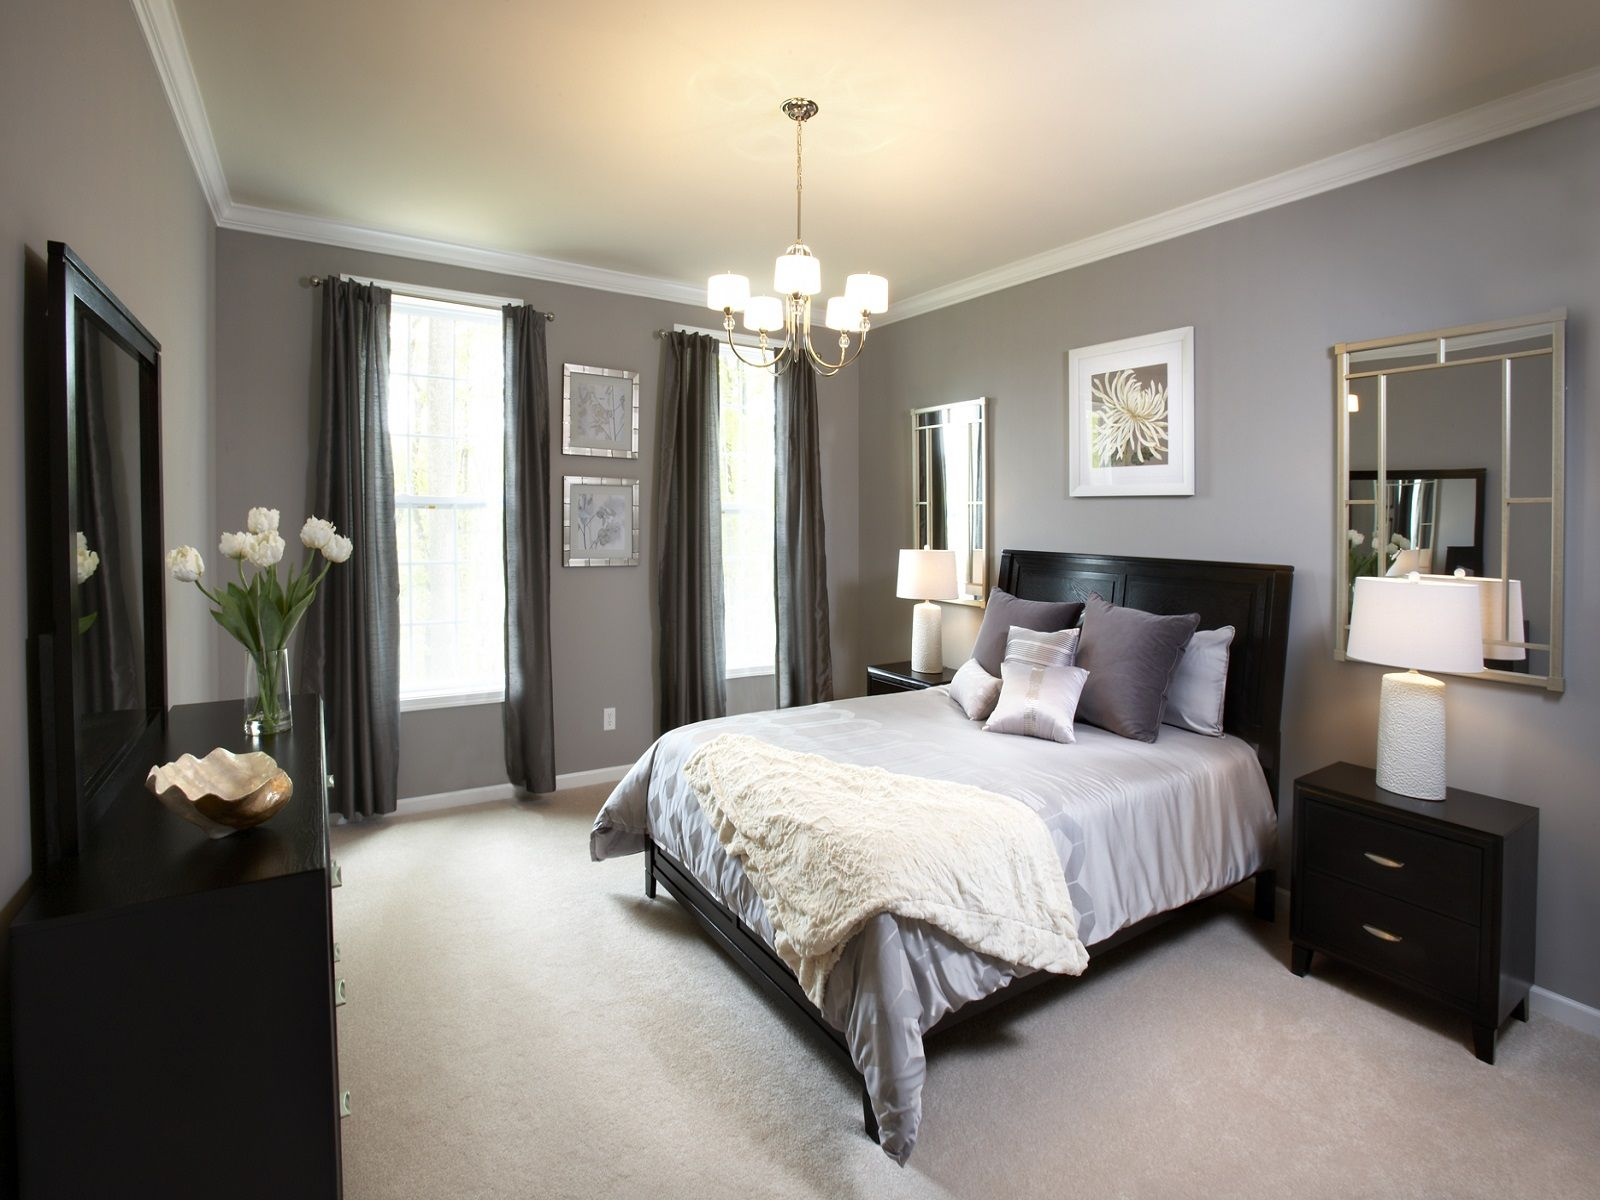 Black Bedroom Ideas  Inspiration For Master Bedroom Designs   dream     Awesome Bedroom Shade Chandelier Over White Bedding Ideas With Black Wooden  Base Bed Frames As Well As Gray Wall Painted In Contemporary Master Bedroom